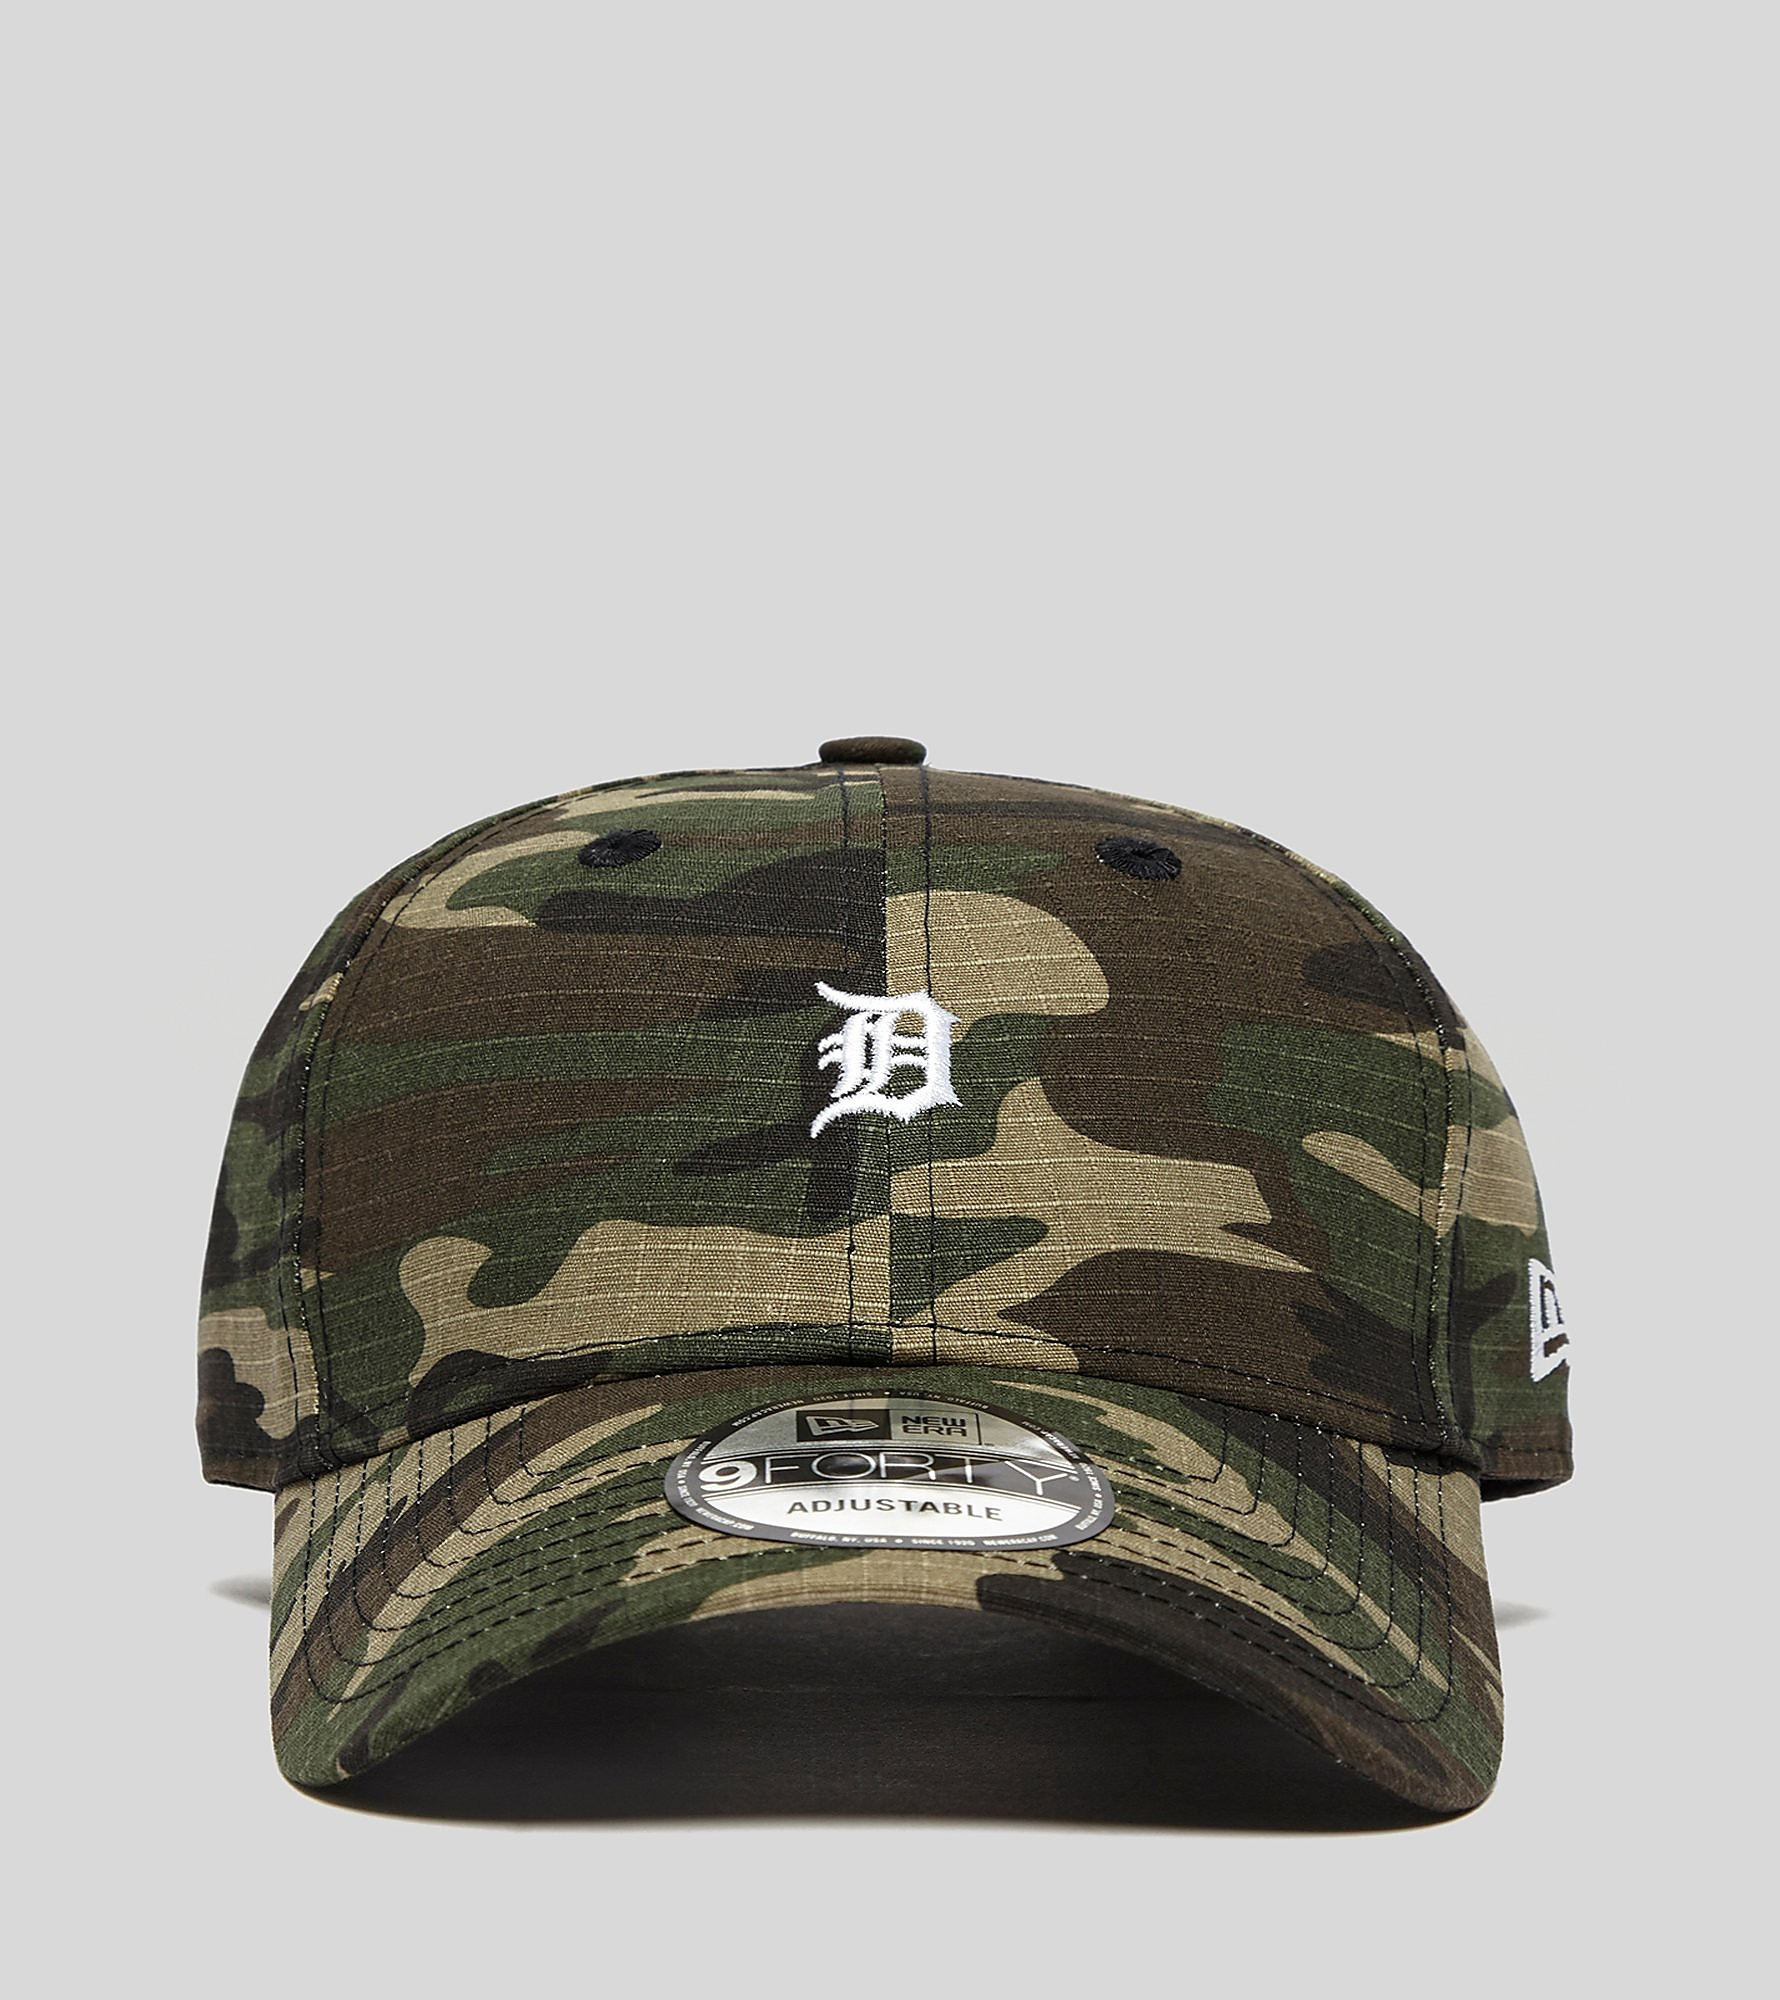 New Era 9FORTY Detroit Tigers Cap - size? Exclusive